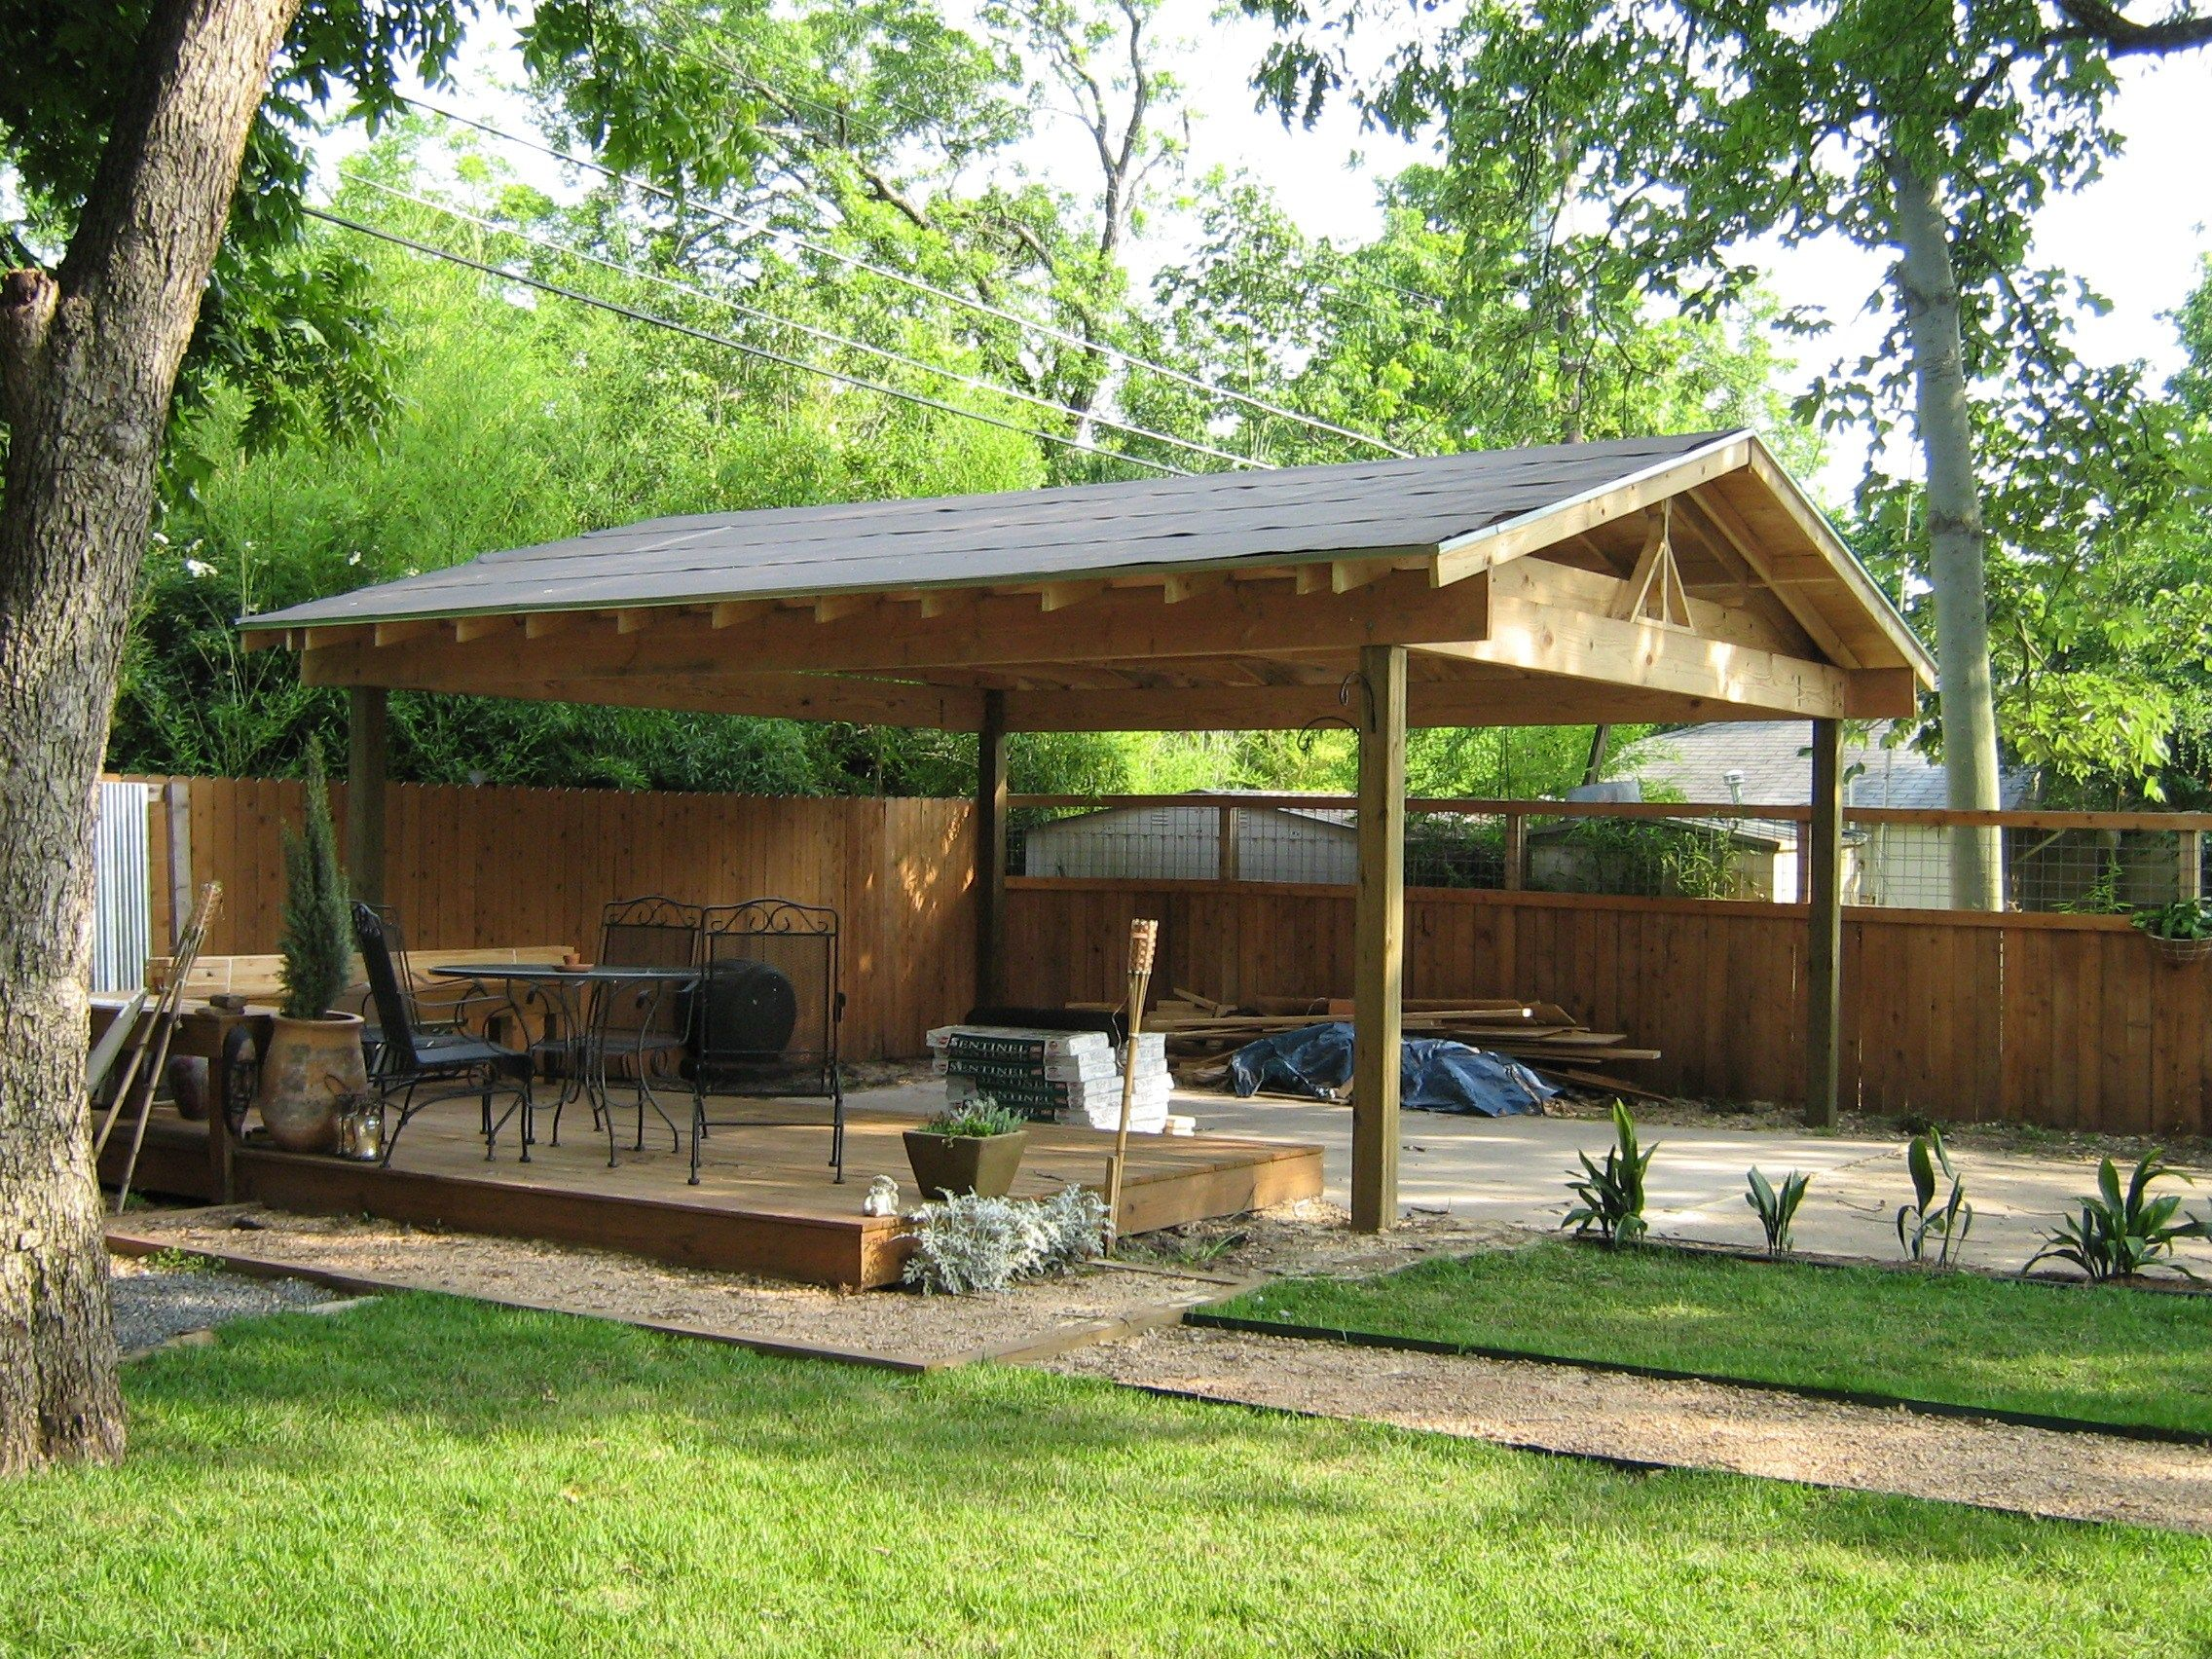 How to Build Wood Carport Kits Do It Yourself Plans